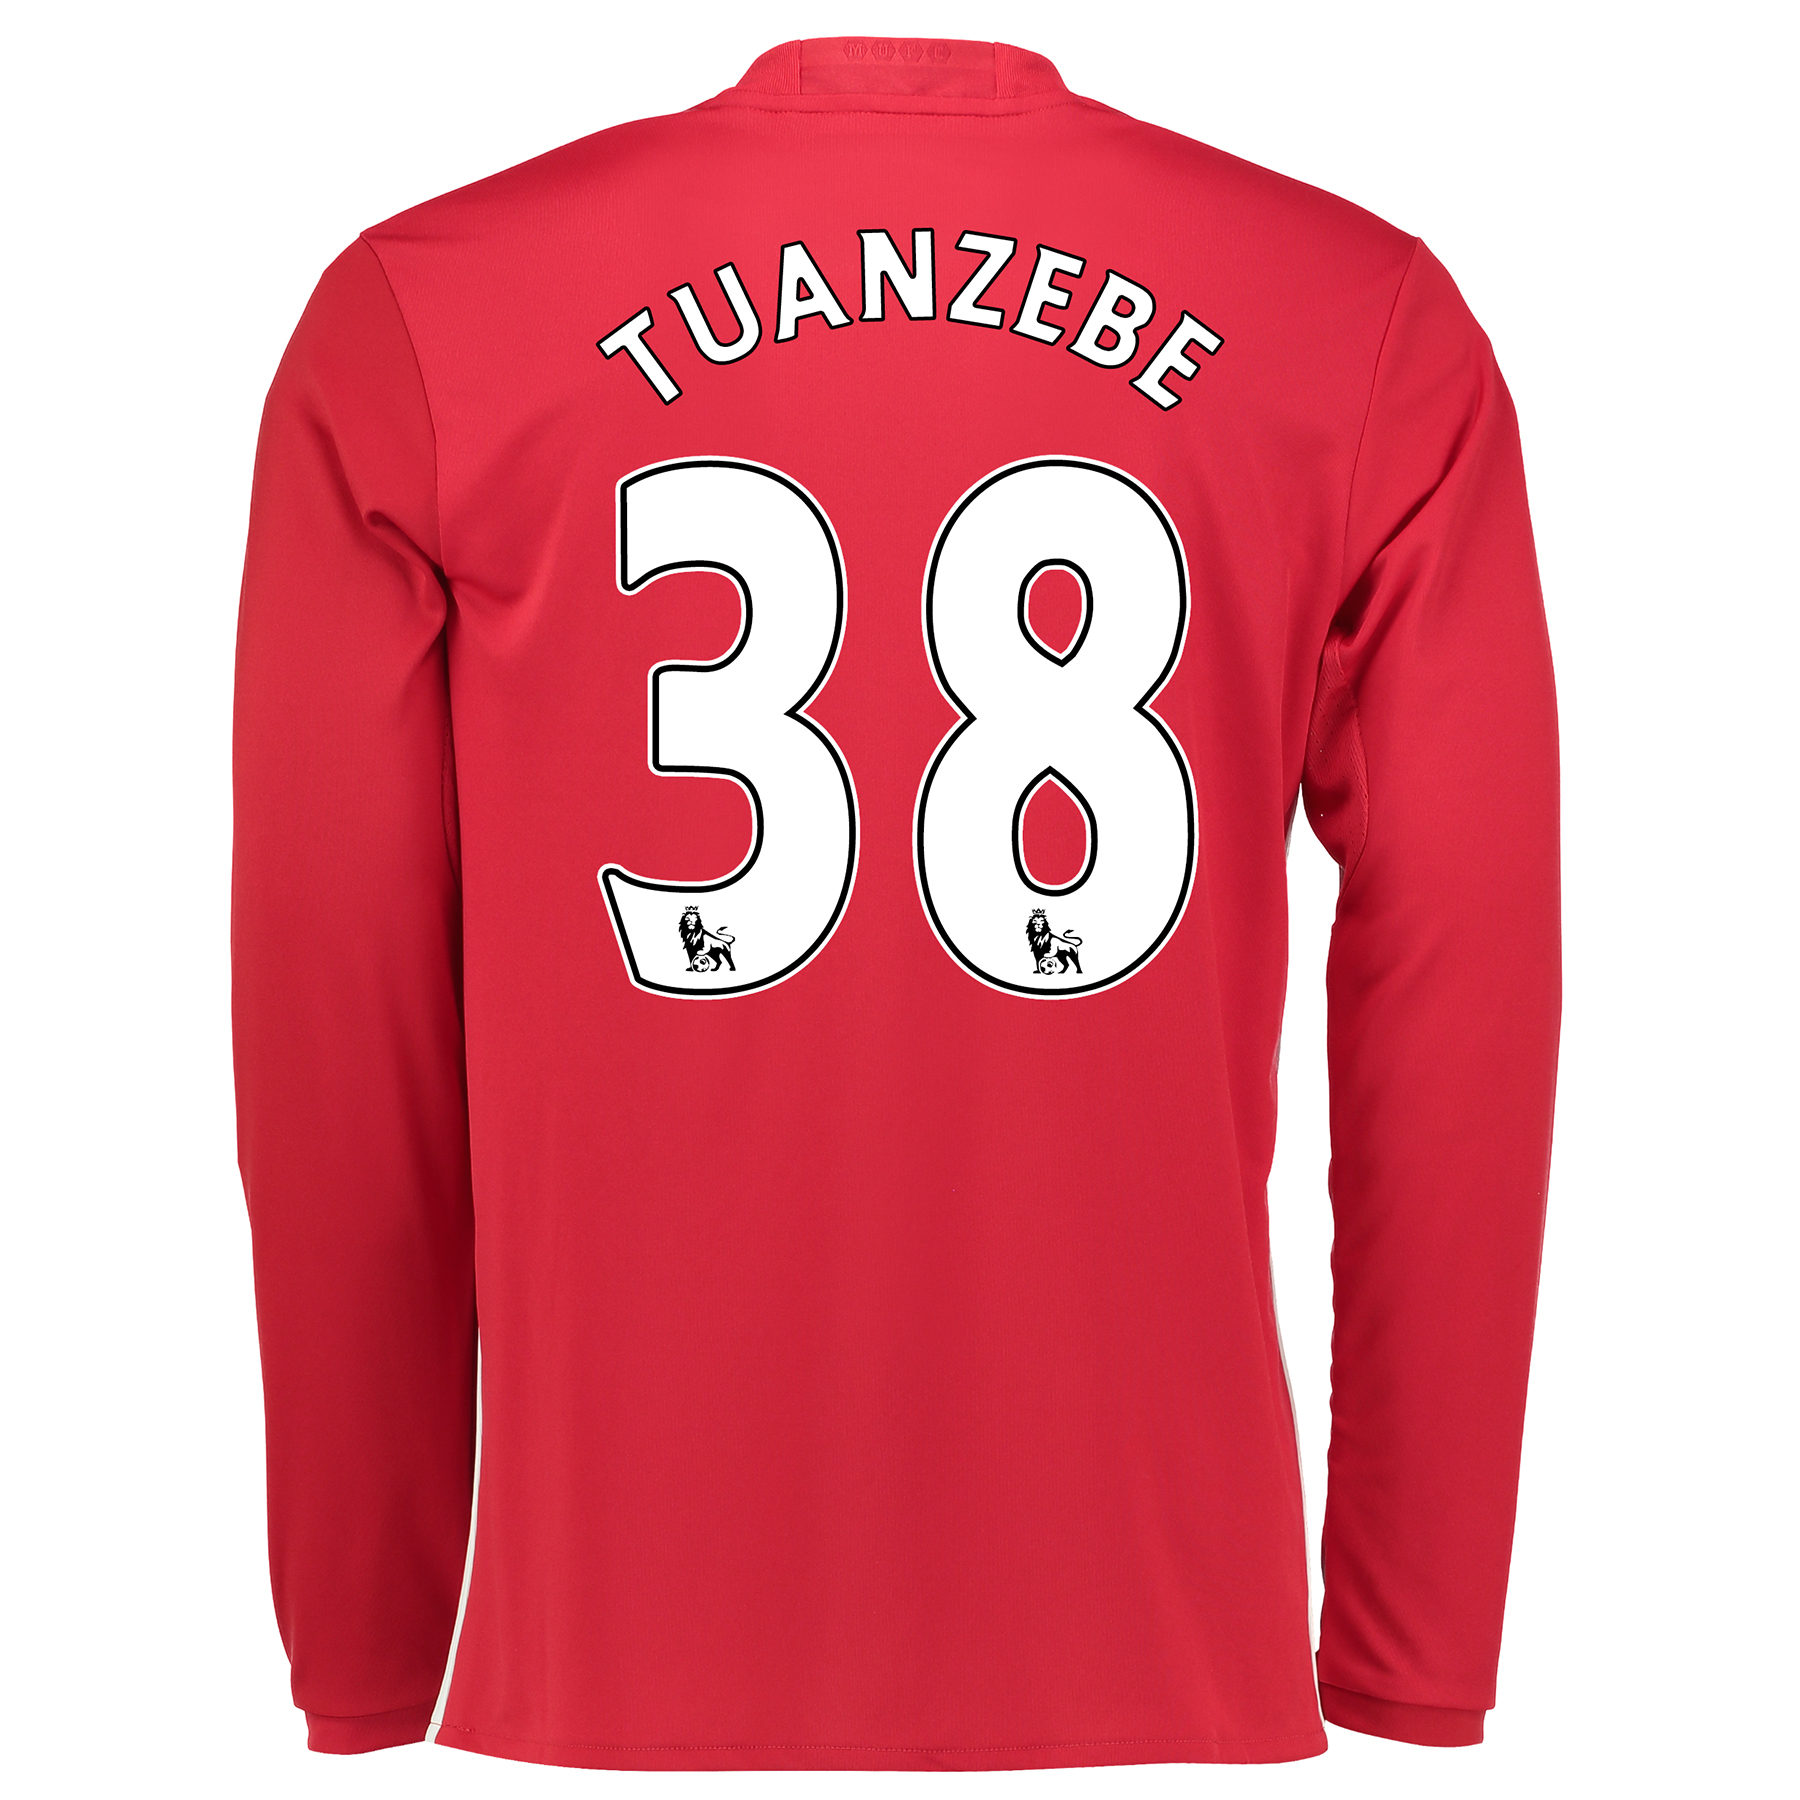 Manchester United Home Shirt 2016-17 - Long Sleeve with Tuanzebe 38 pr